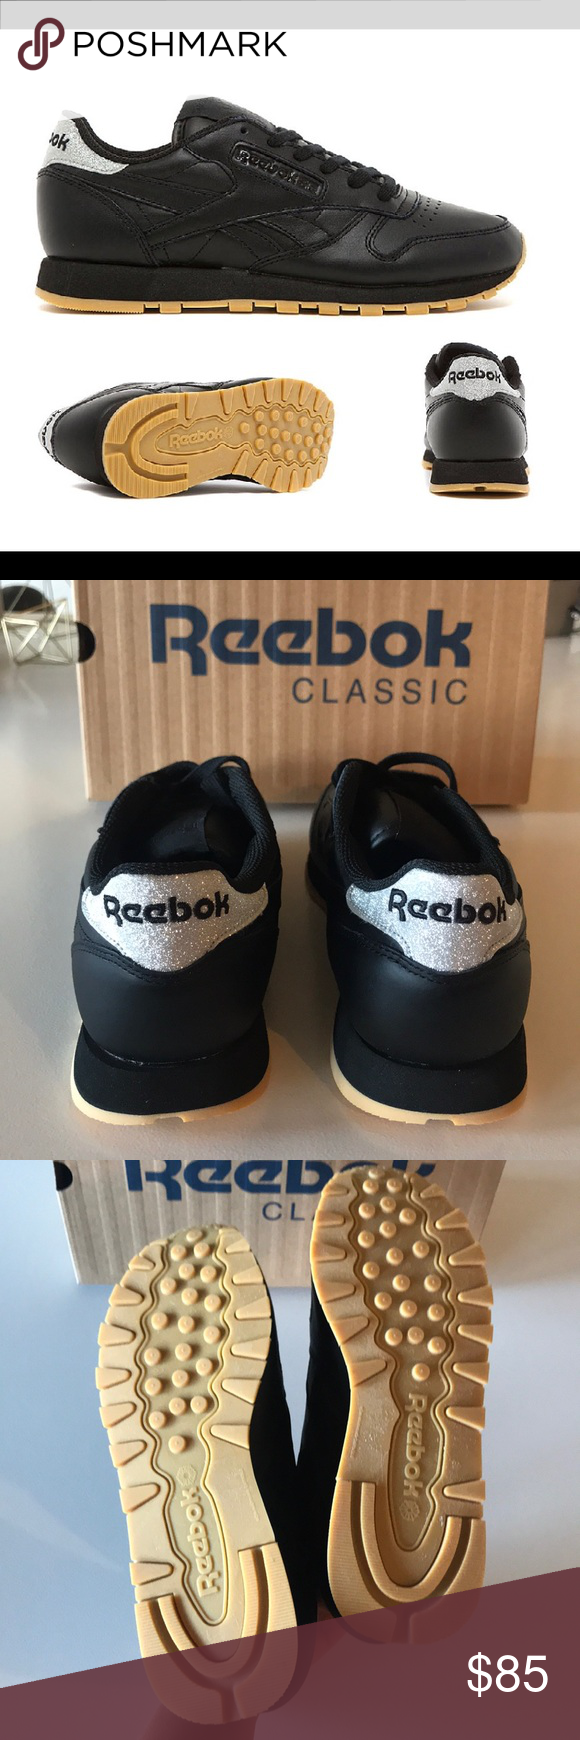 6e57a3bcab26 NWT Reebok Classic Black Leather  Diamond Pack  Super Comfortable and  Stylish!! Reebok Shoes Sneakers